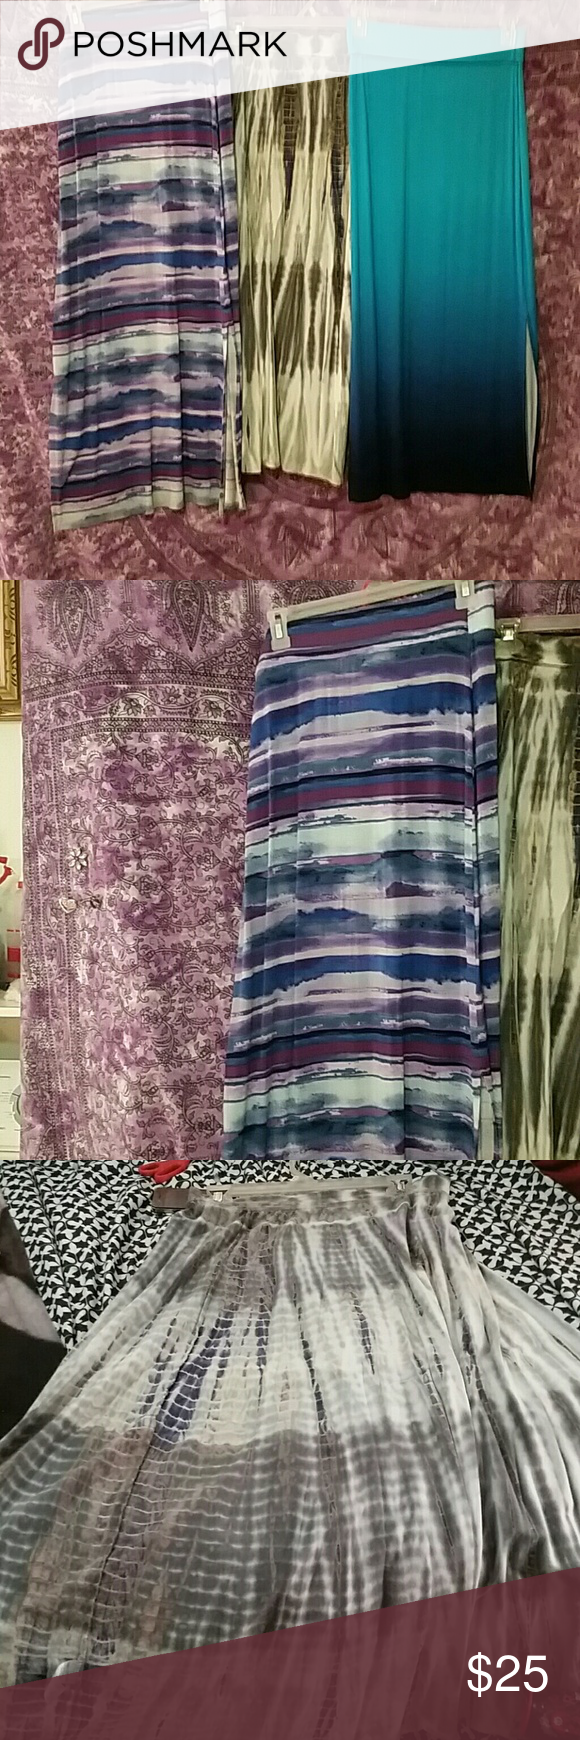 Long skirts! 3 skirts 2 are long and straight great condition and colors one tie die in worn condition wore with love Skirts Skirt Sets